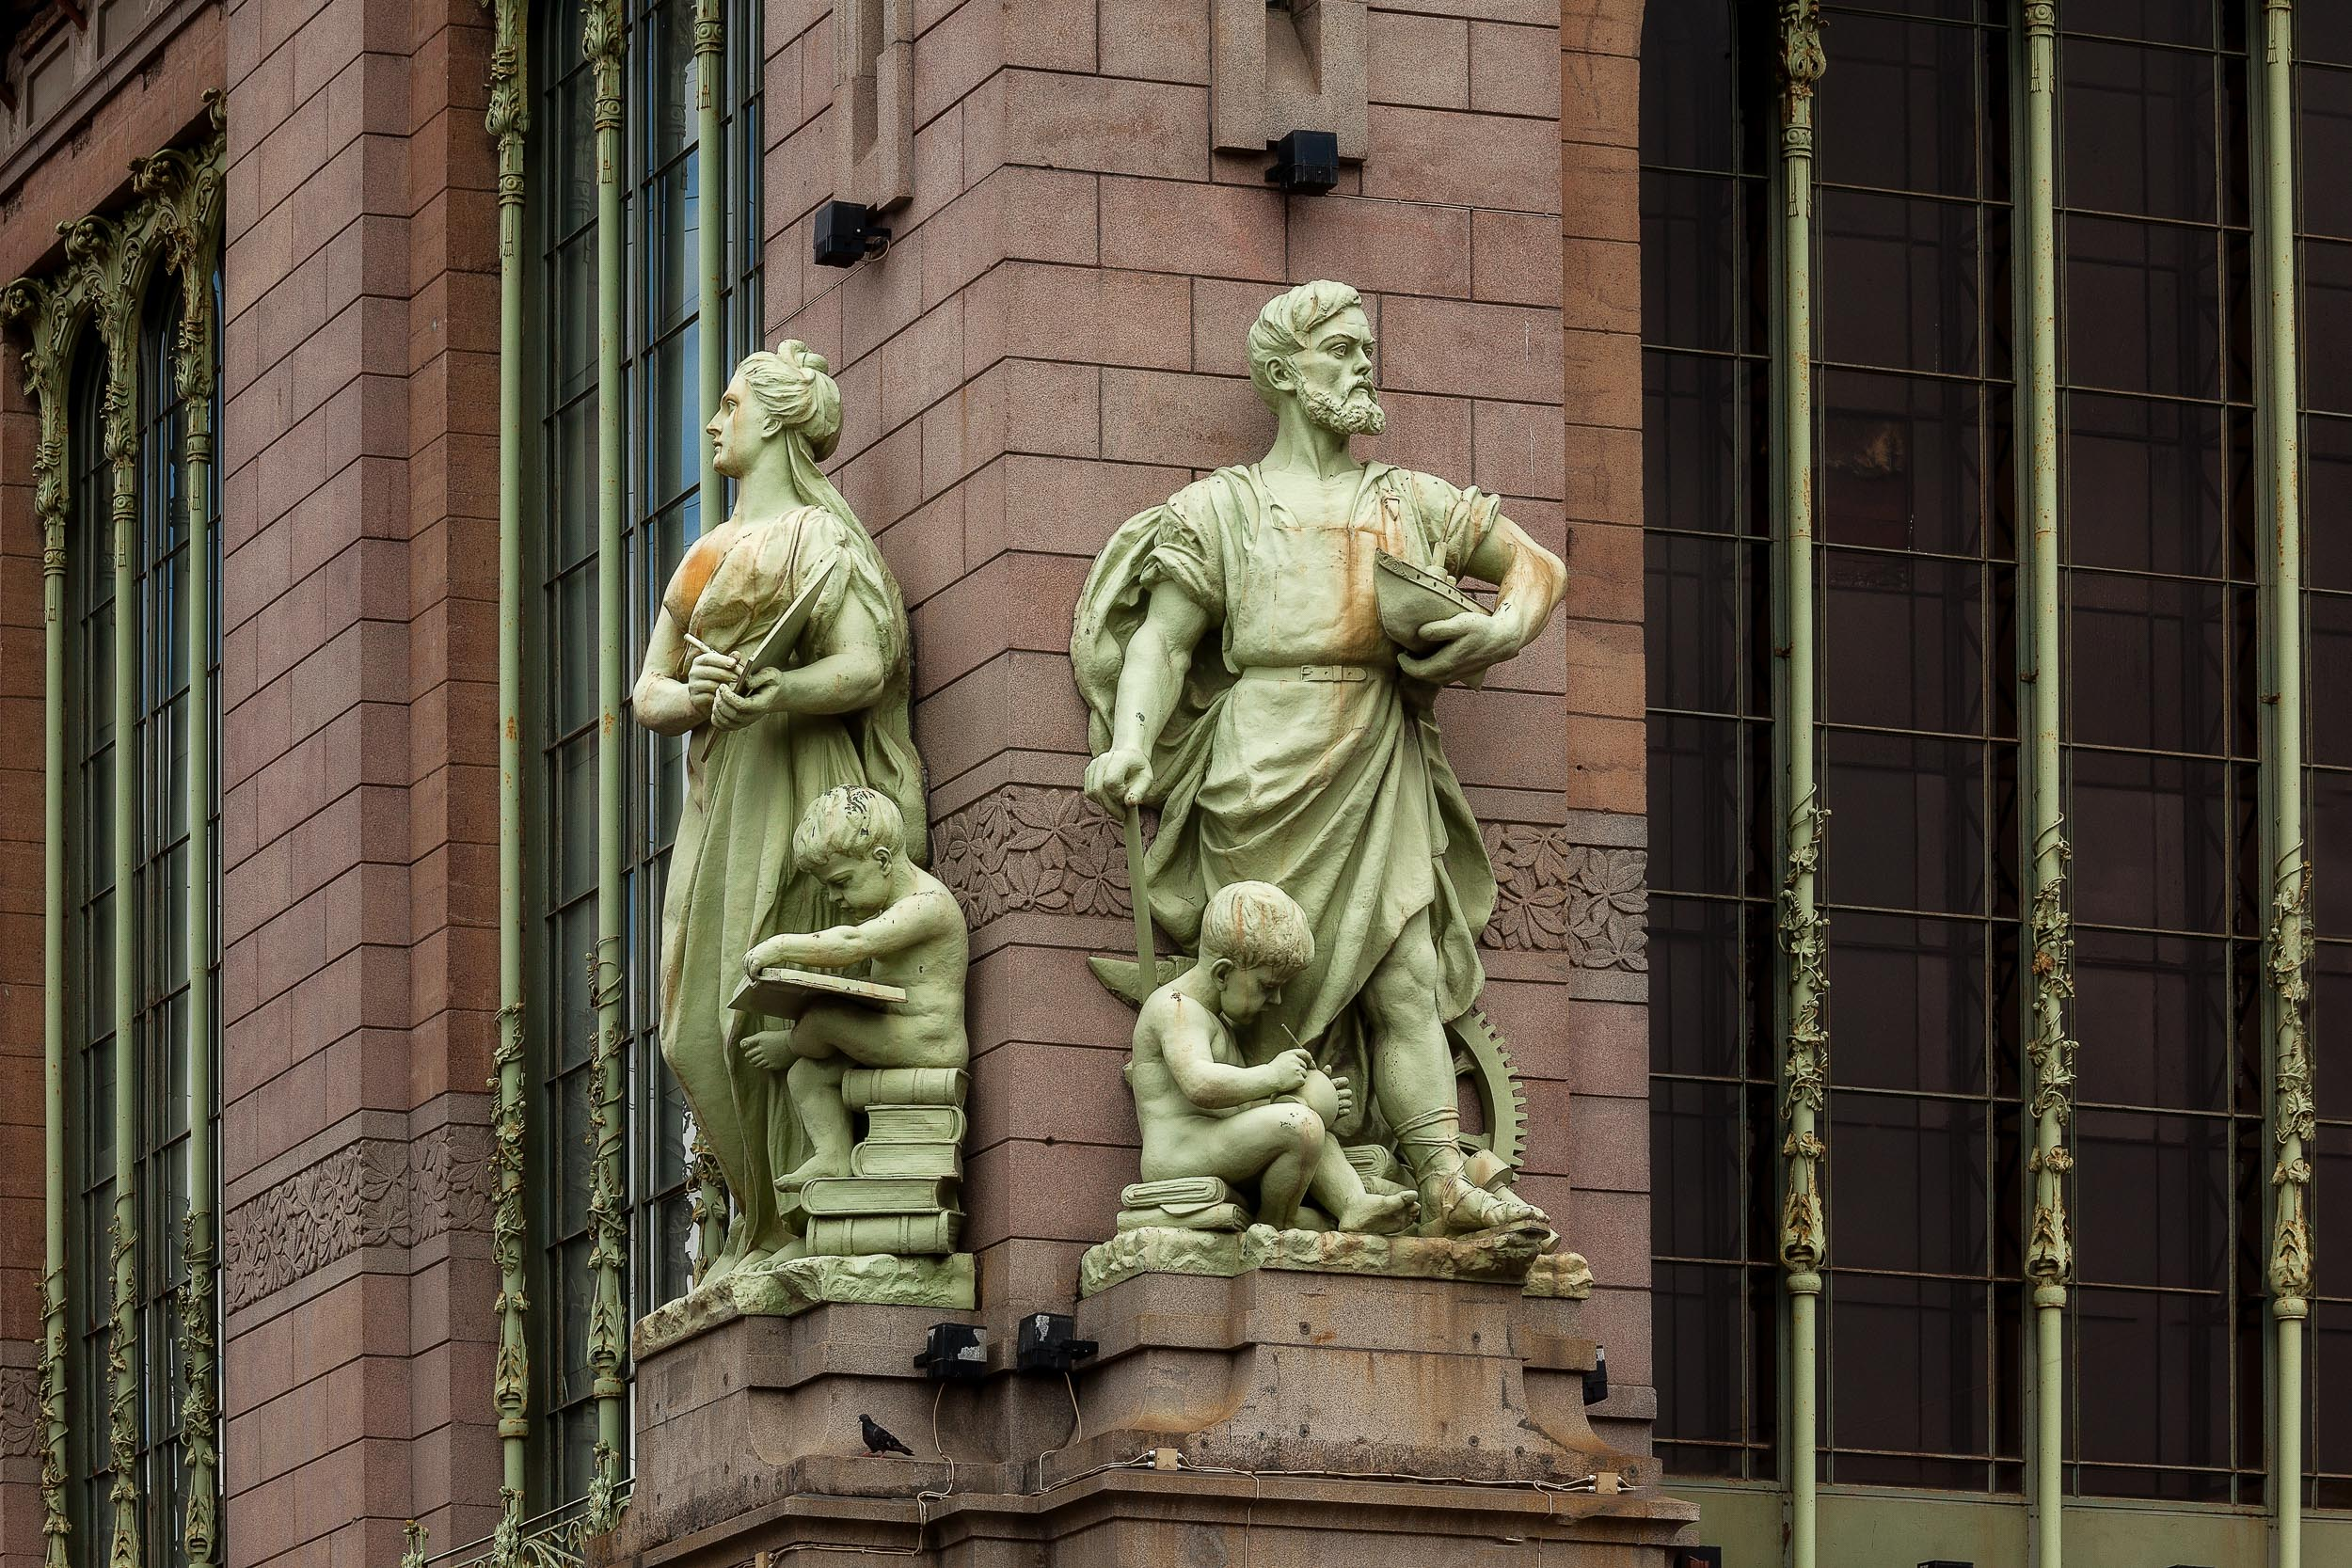 Statues  signifying strength and learning on an  historic building facade  above the  Neva River  in  St. Petersburg, Russia .